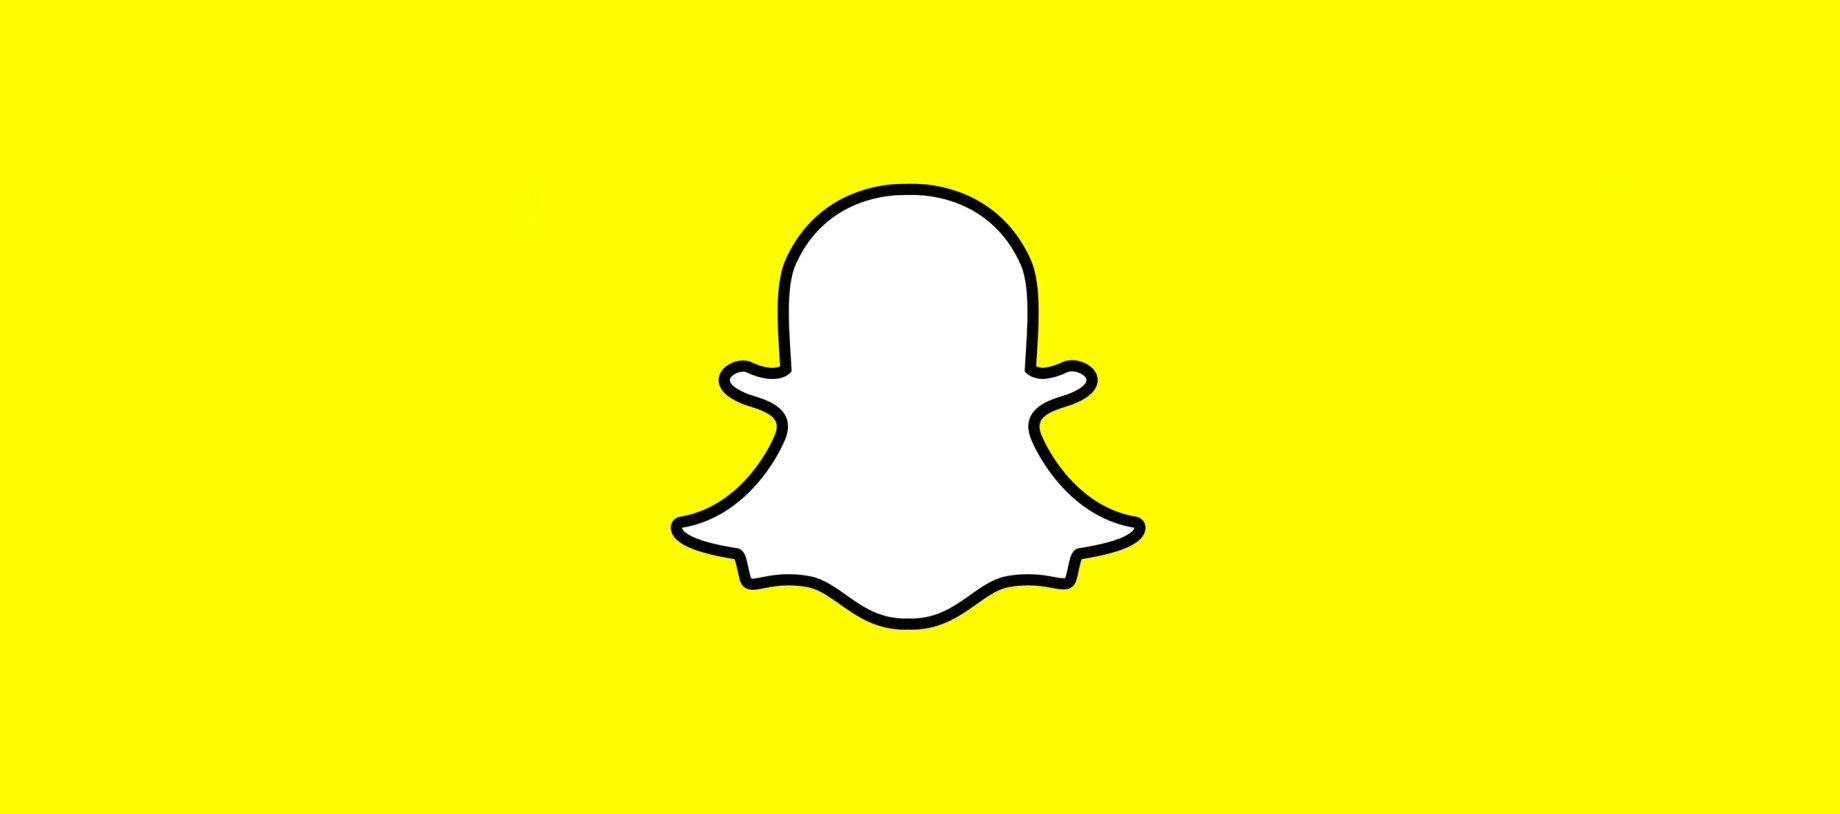 Now You Can Add Friends With Snapchat Personalized URL